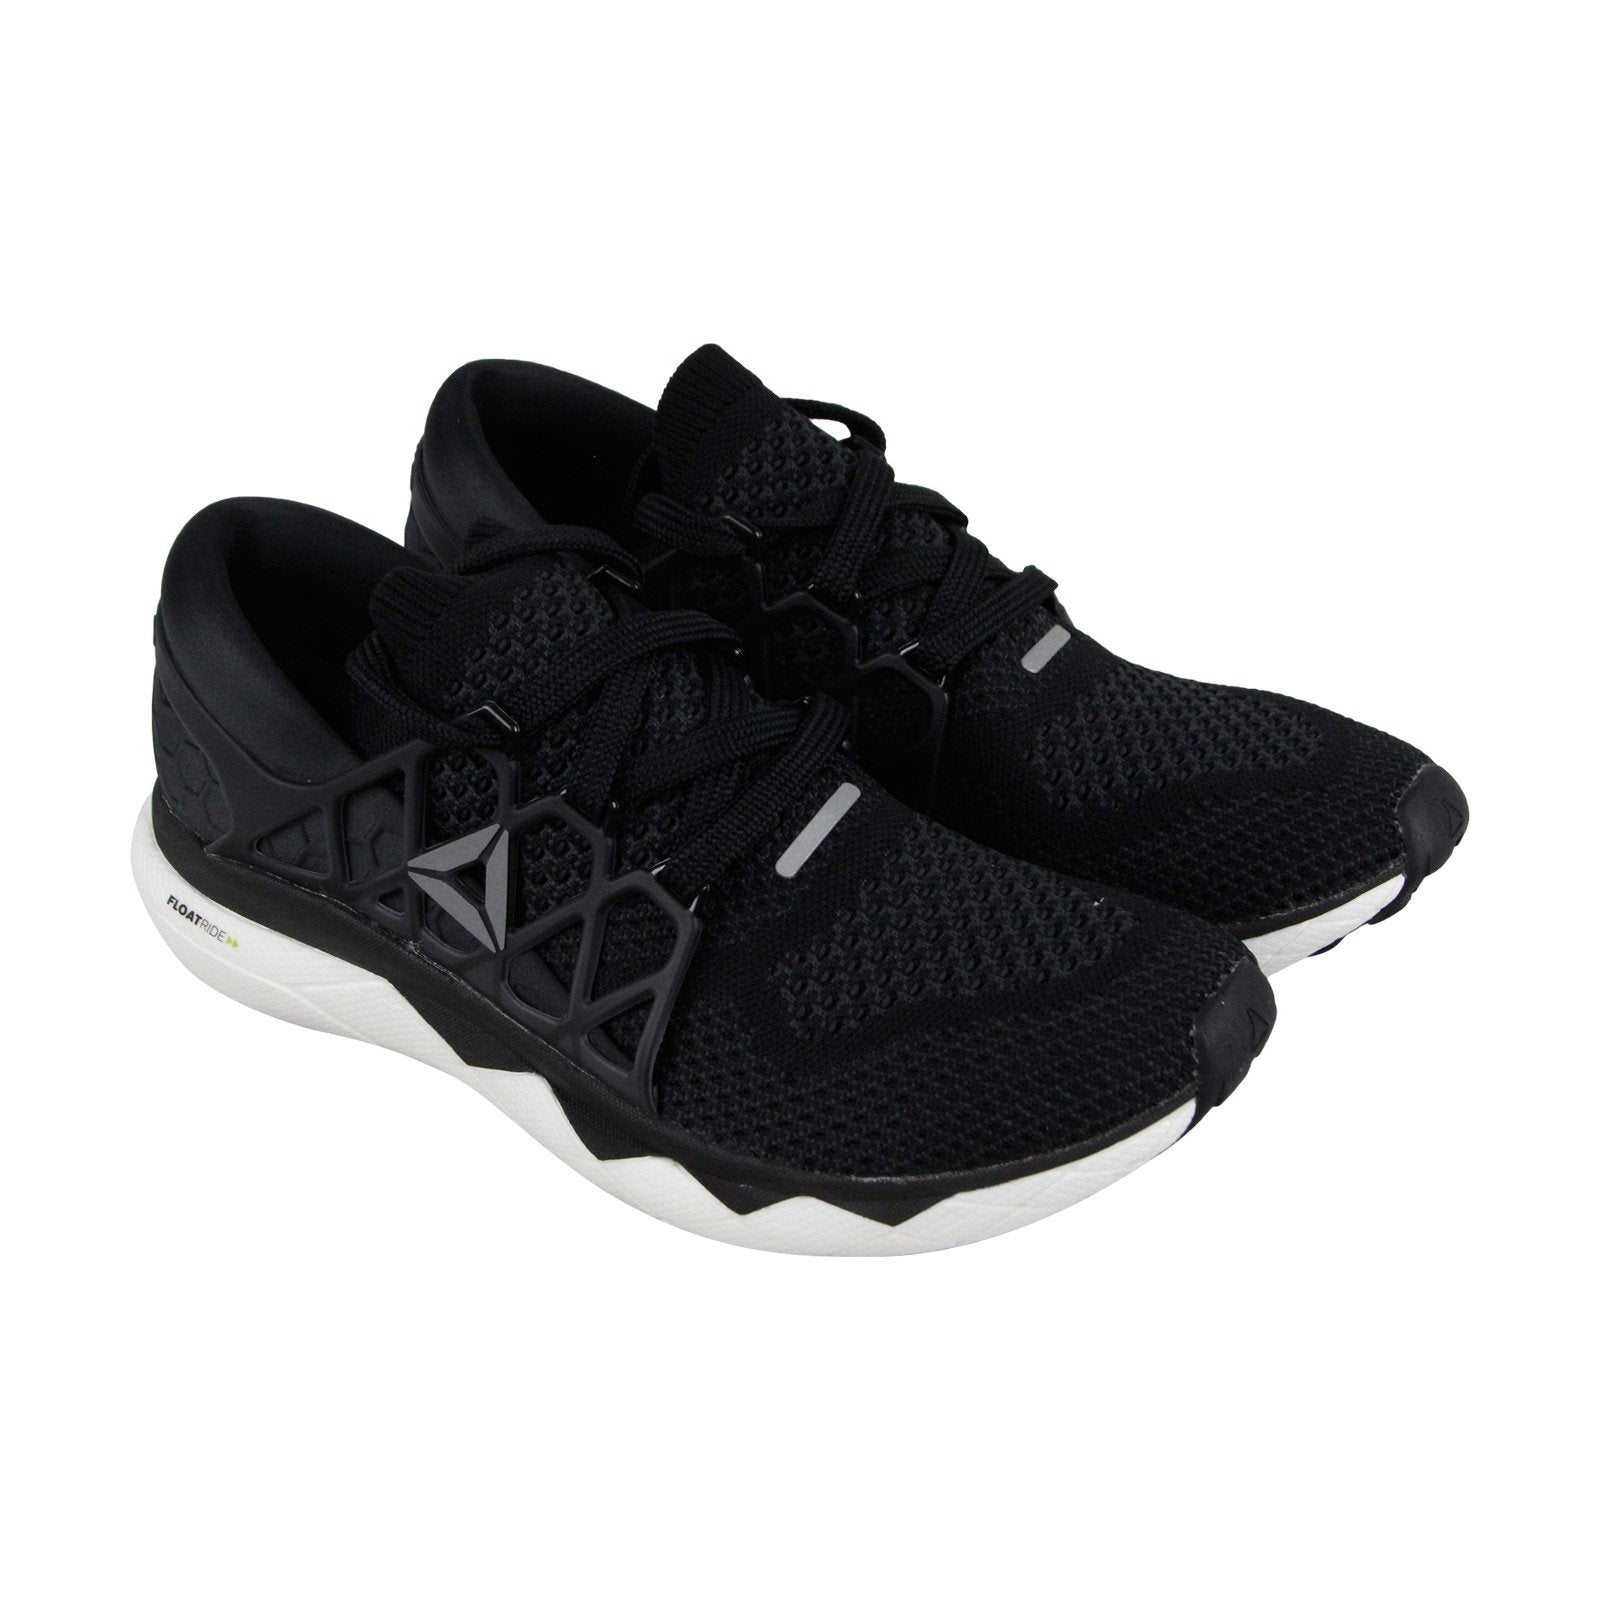 lowest price 7a9f8 a2b39 Reebok Floatride Run Ultk Mens Black Mesh Athletic Lace Up Running Shoes